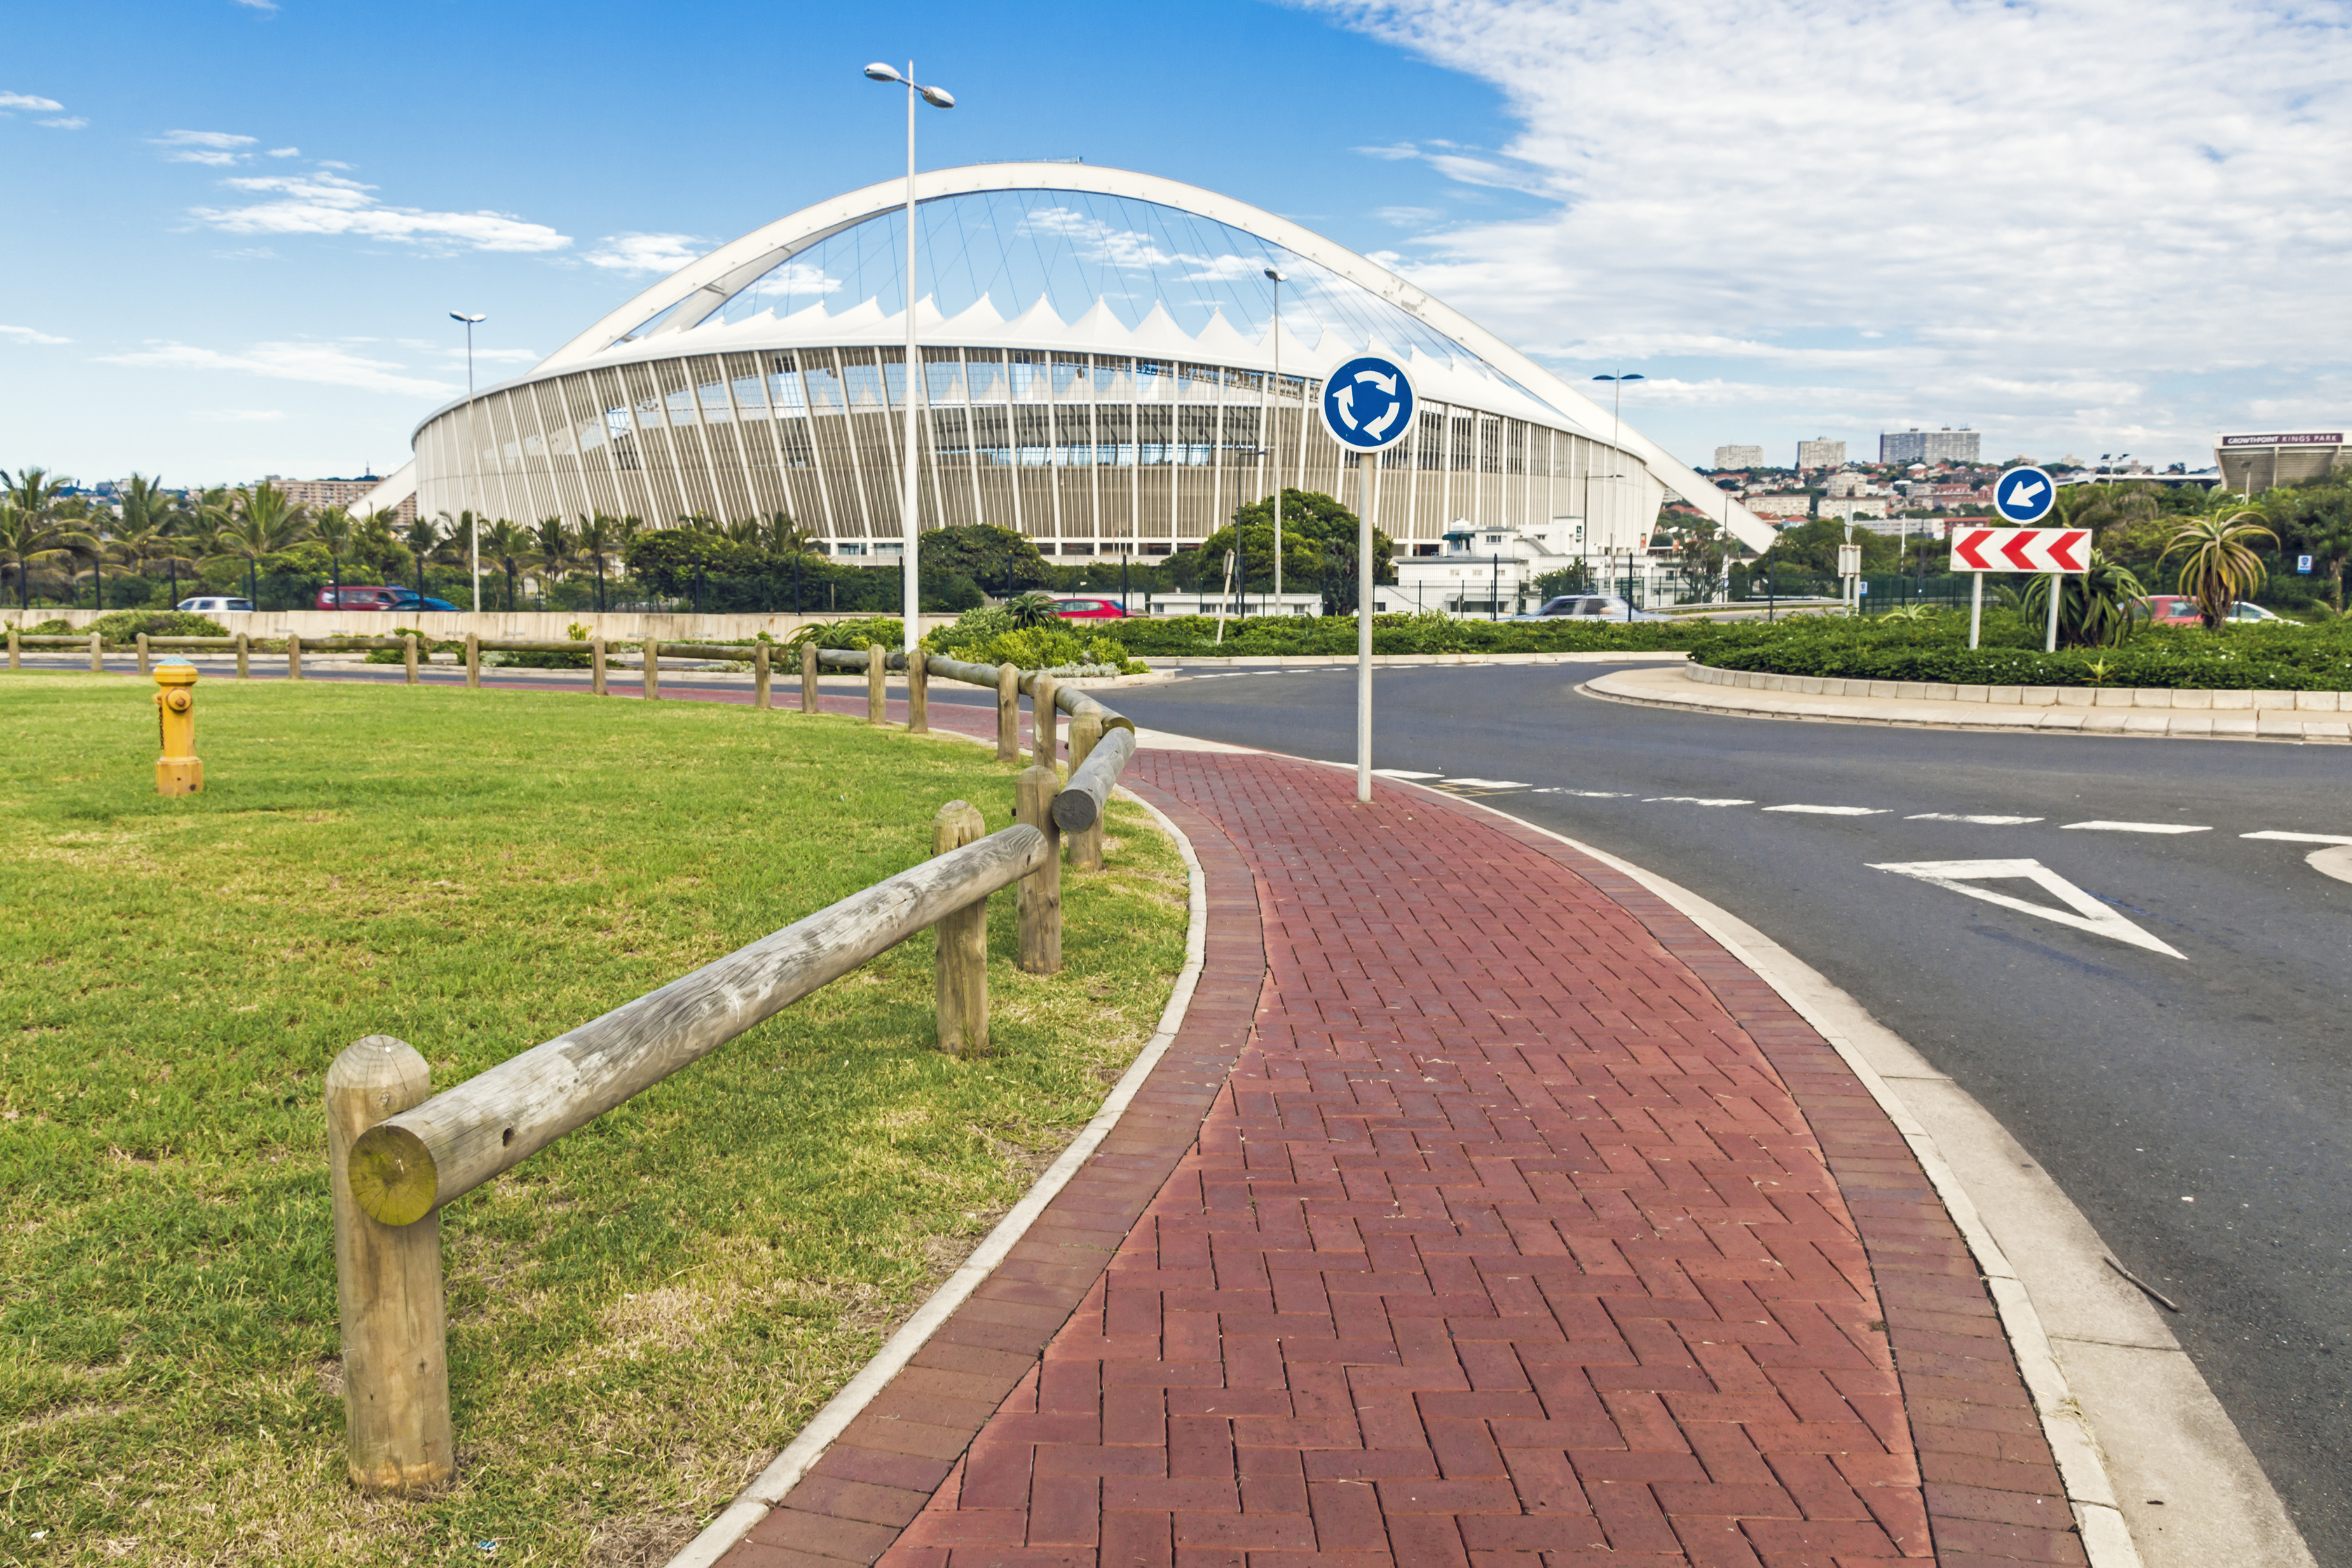 Finish venue for Comrades 2020